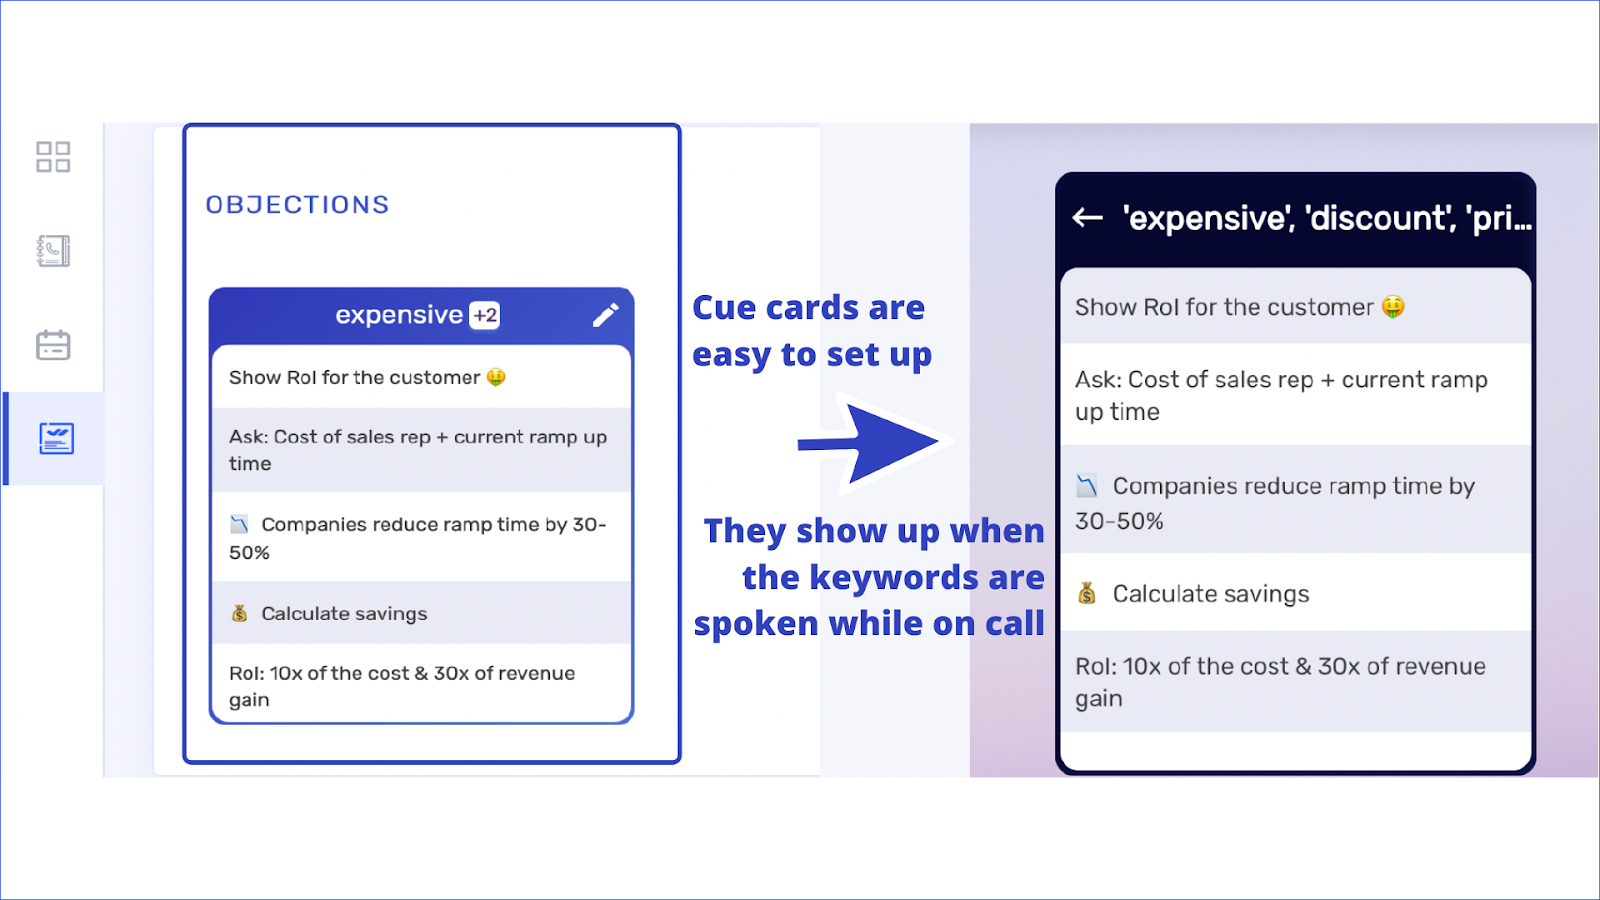 Get the right info at the right moment with cue cards